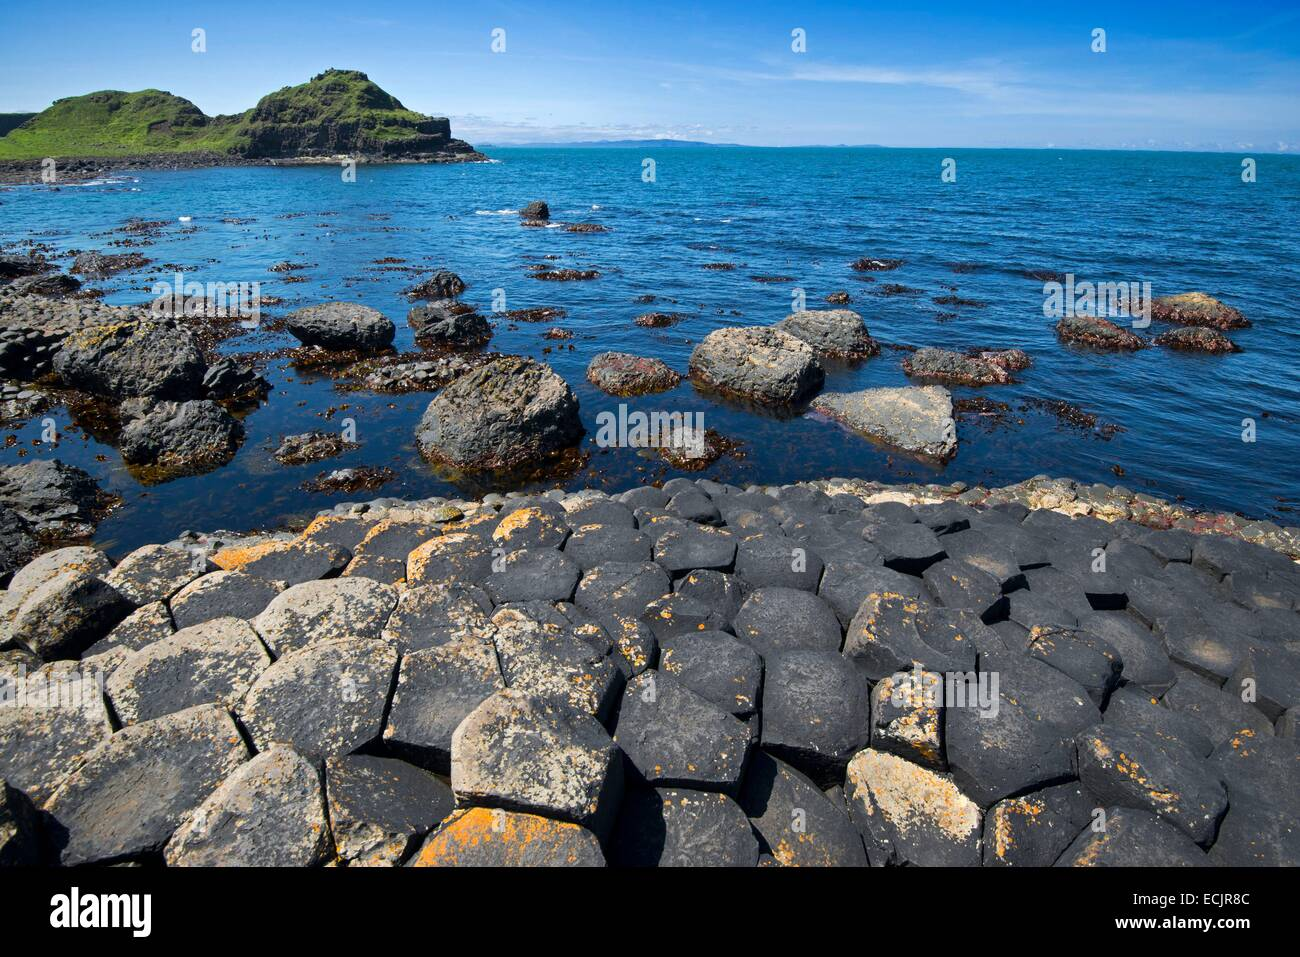 United Kingdom, Northern Ireland, County Antrim, the Giants Causeway listed as World Heritage by UNESCO - Stock Image